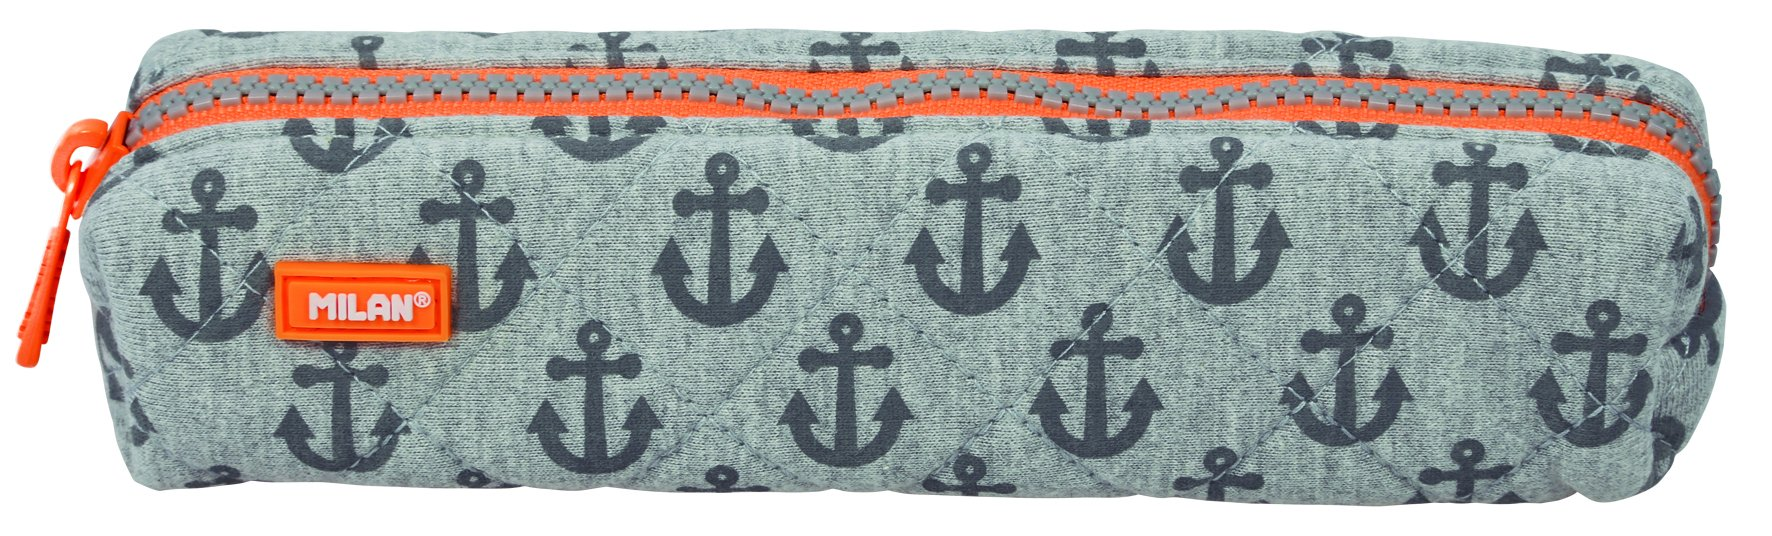 Milan Mini Anchors Estuches, 20 cm, Gris/Naranja